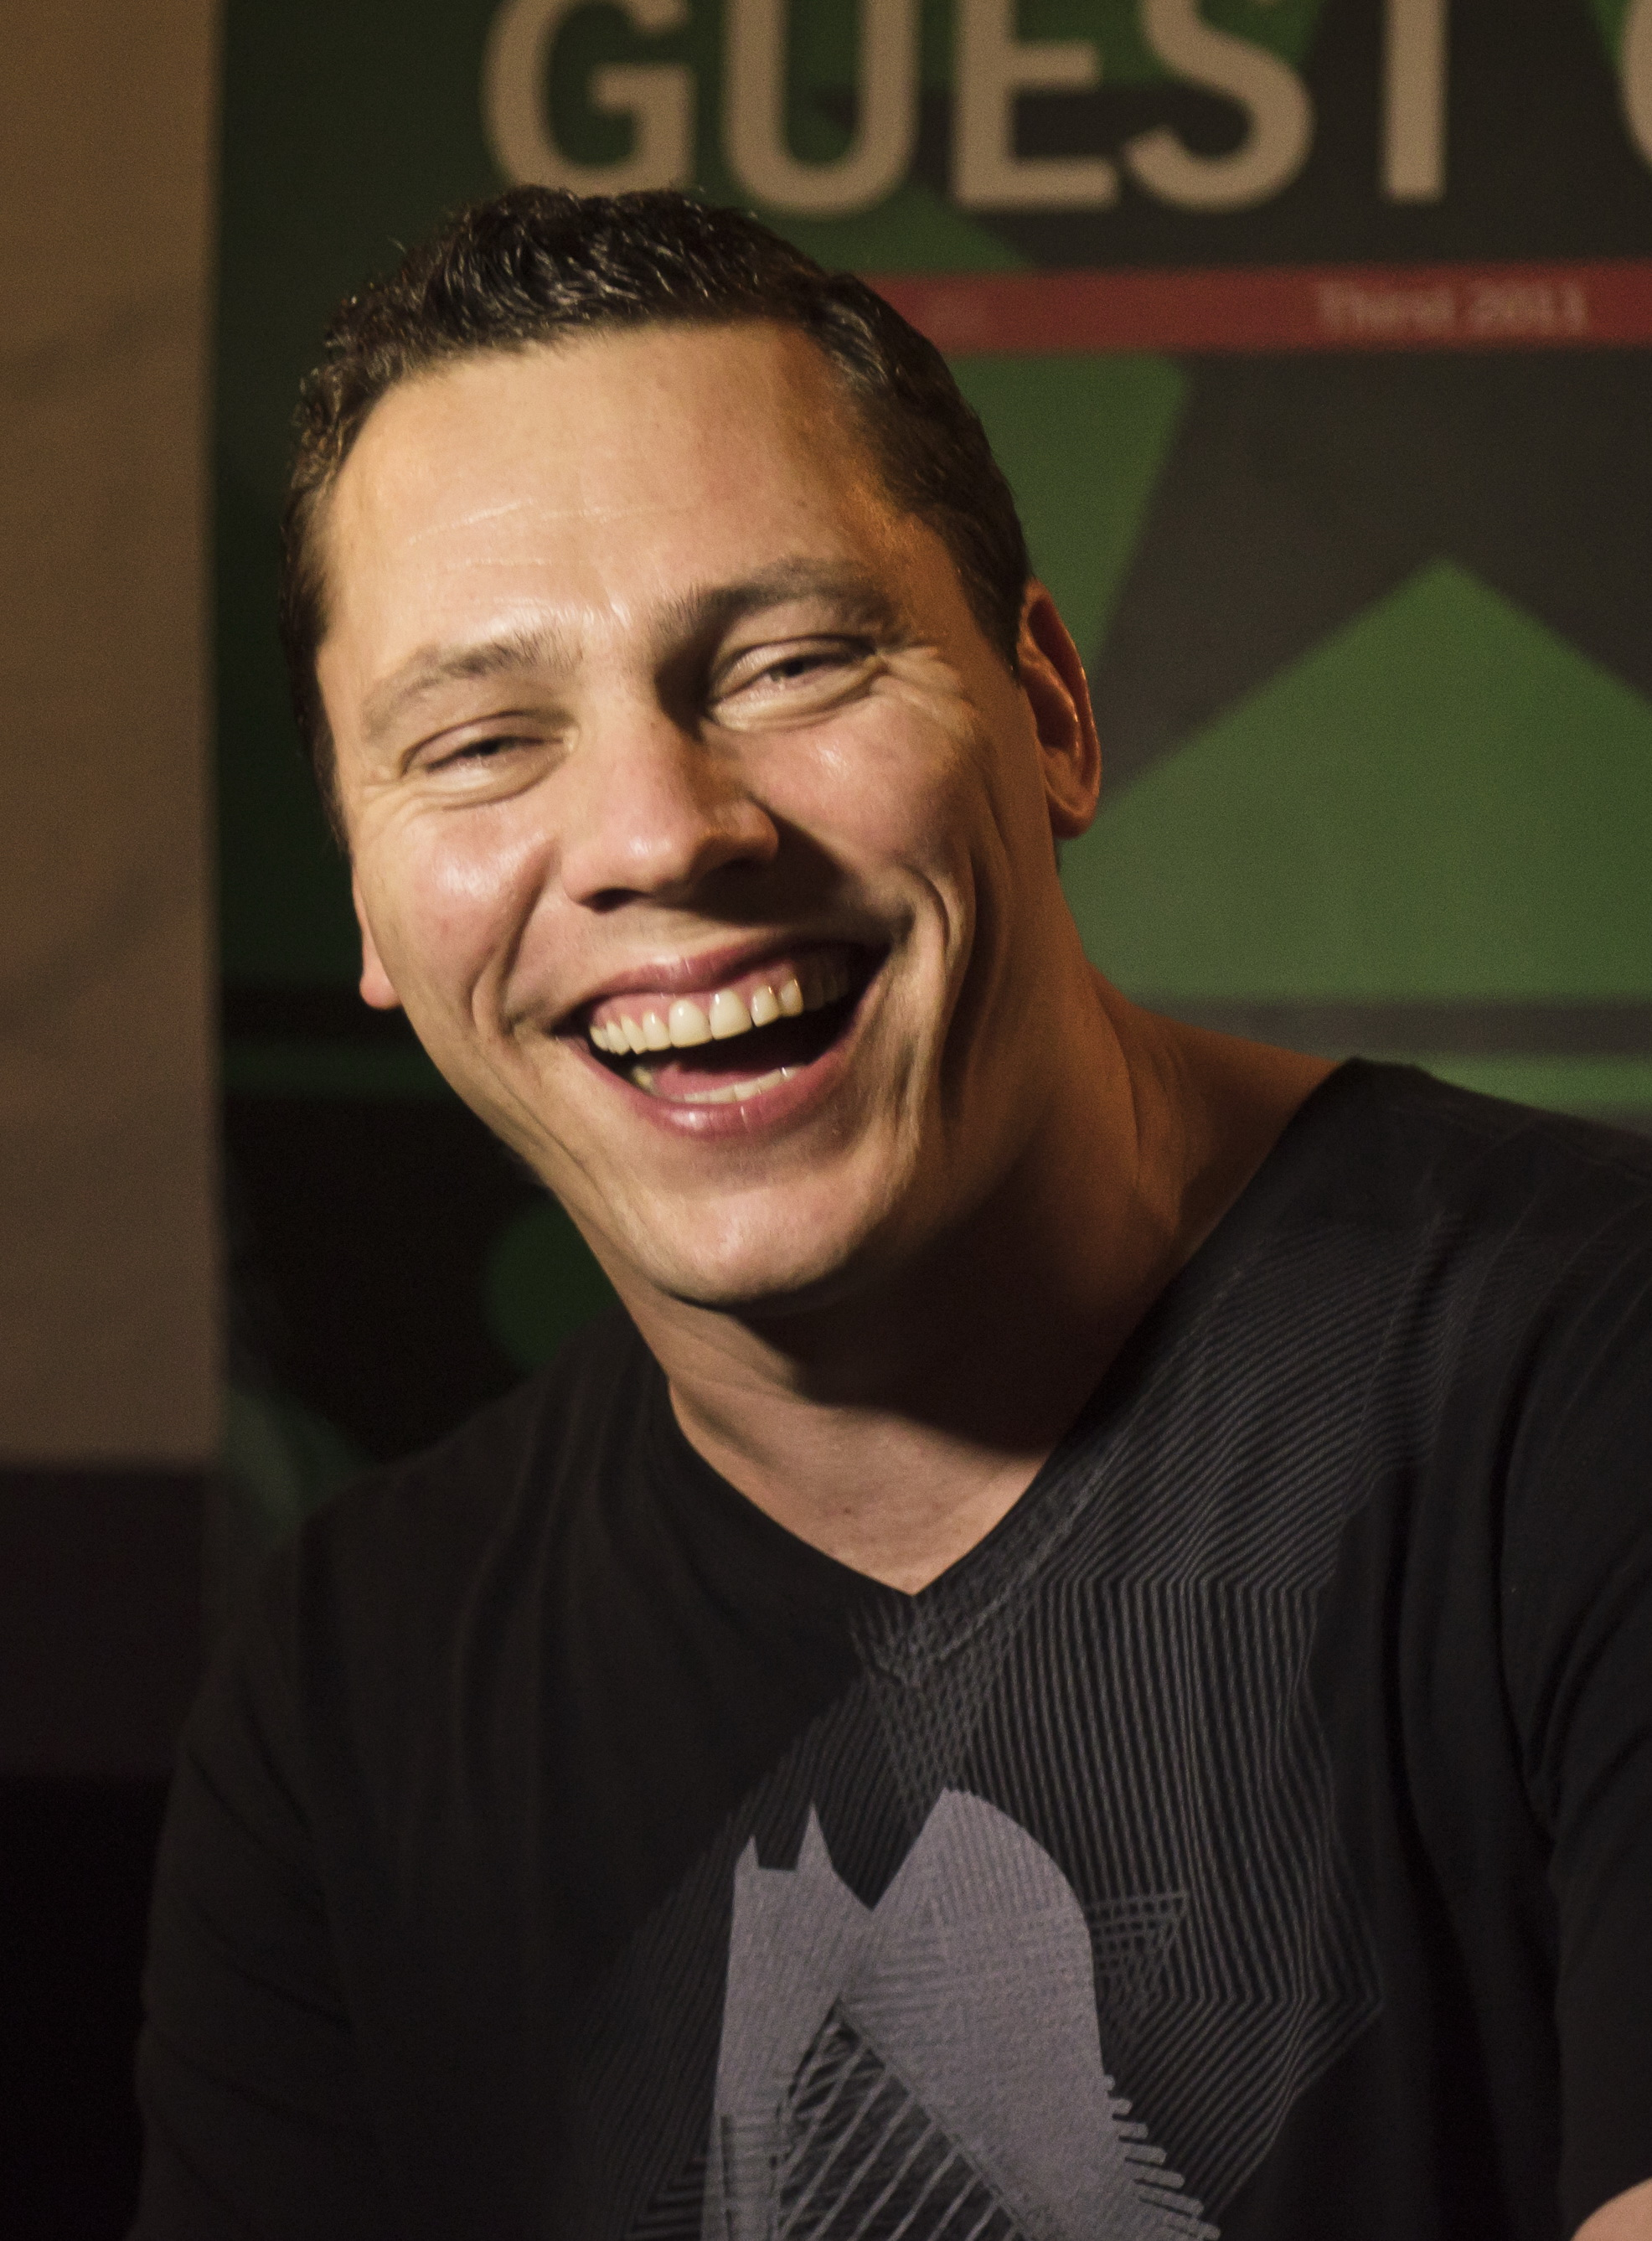 DJ Tiësto earned a unknown million dollar salary, leaving the net worth at 75 million in 2017